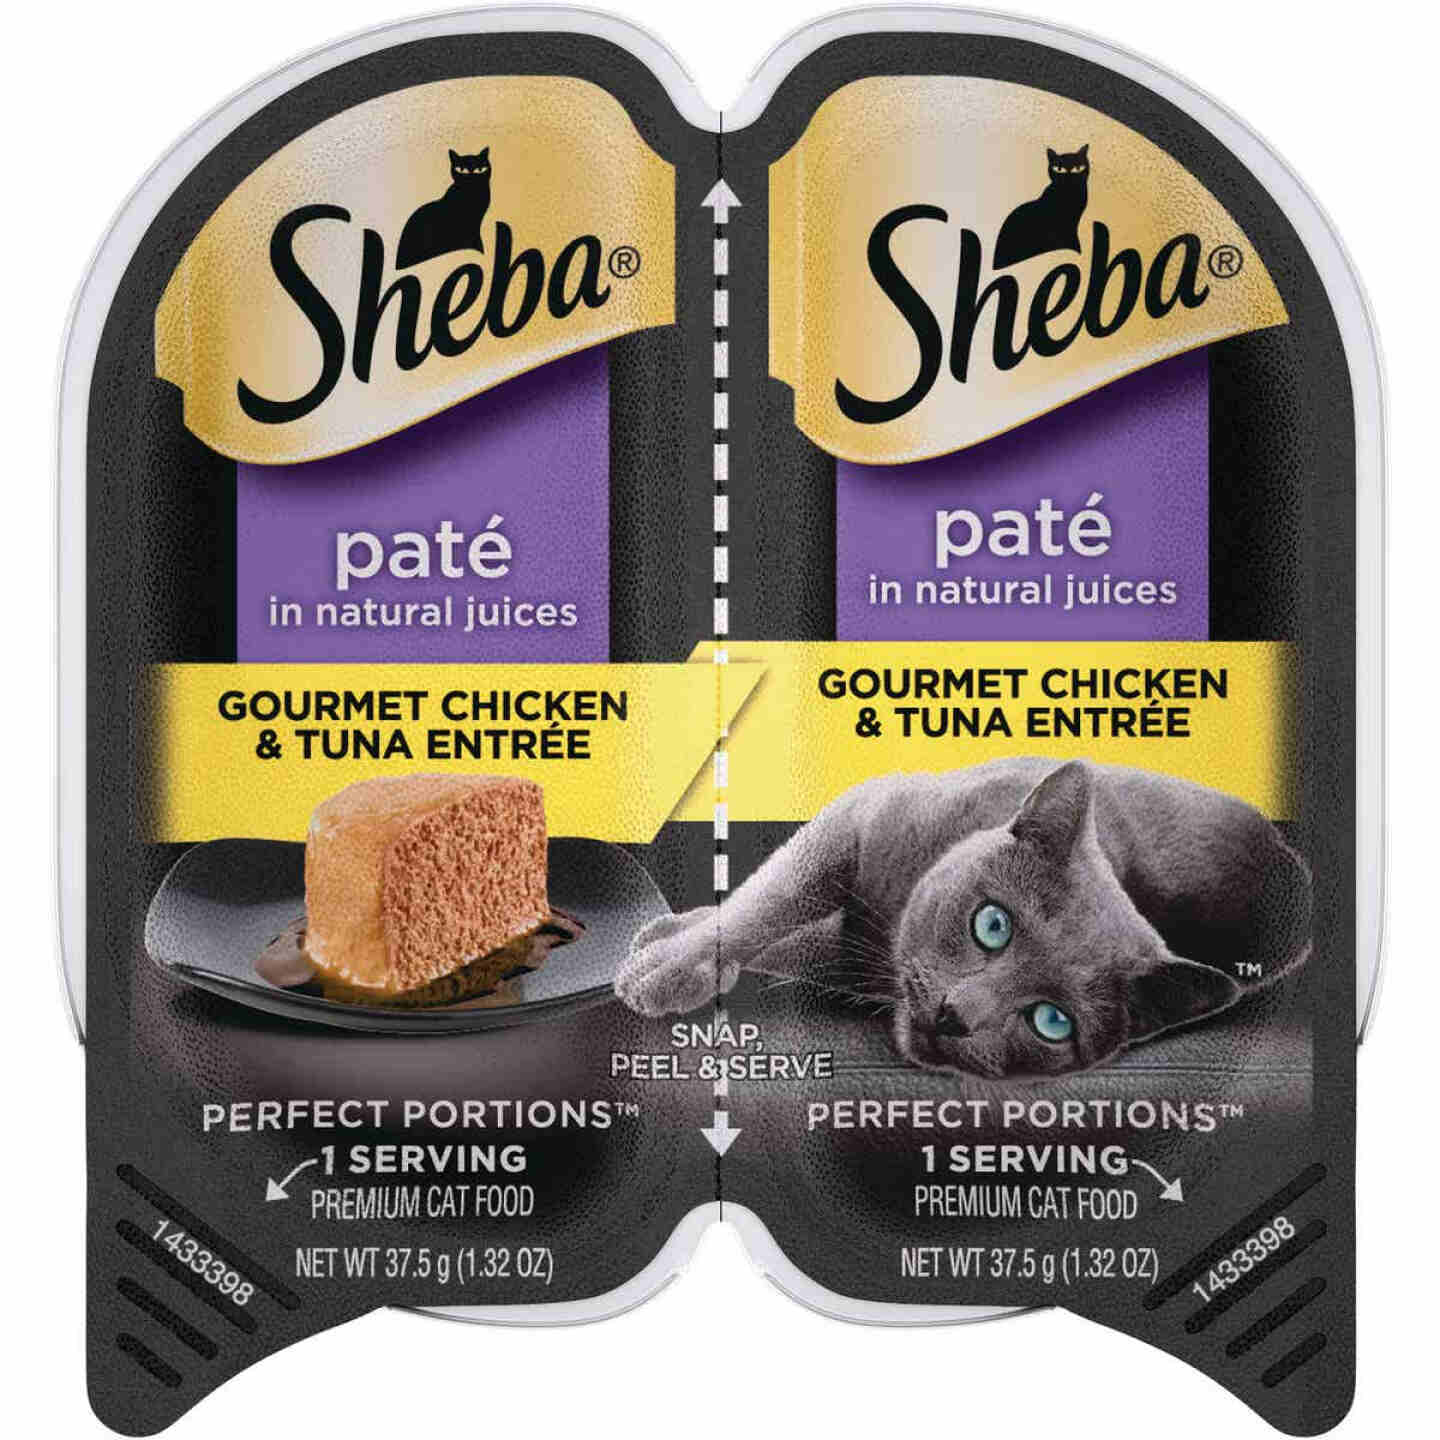 Sheba Perfect Portions Pate 2.6 Oz. Adult Gourmet Chicken & Tuna Wet Cat Food Image 1